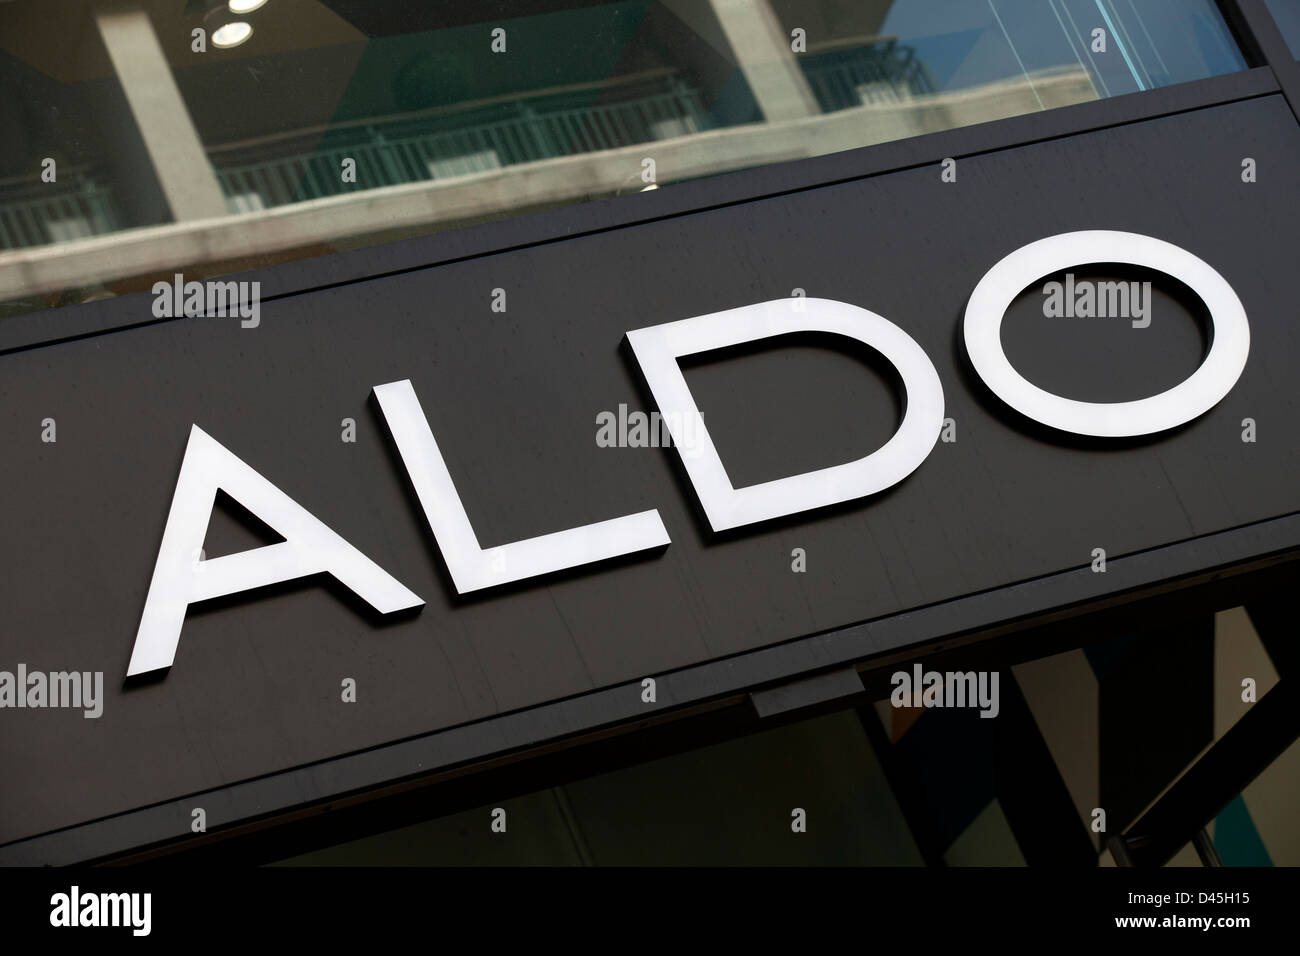 Sign for shoe shop aldo stock photo 54212849 alamy sign for shoe shop aldo buycottarizona Gallery